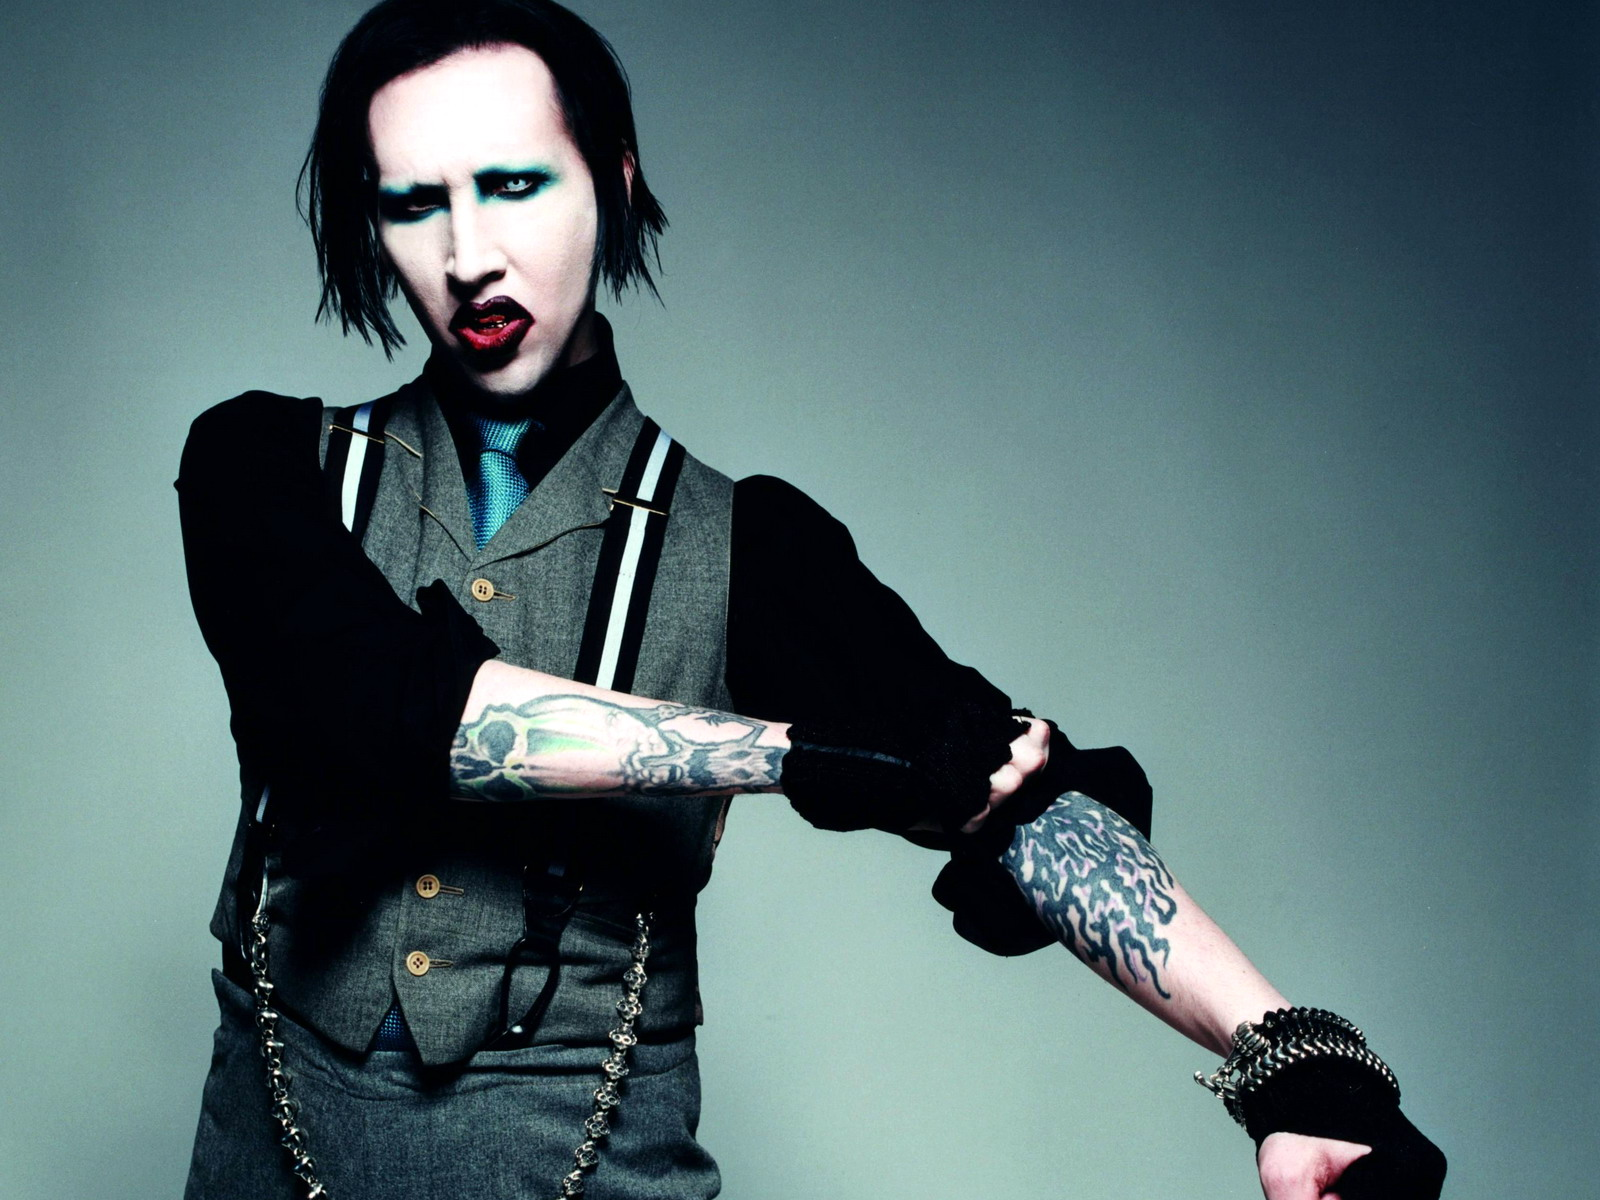 Marilyn Manson Backgrounds, Compatible - PC, Mobile, Gadgets  1600x1200 px